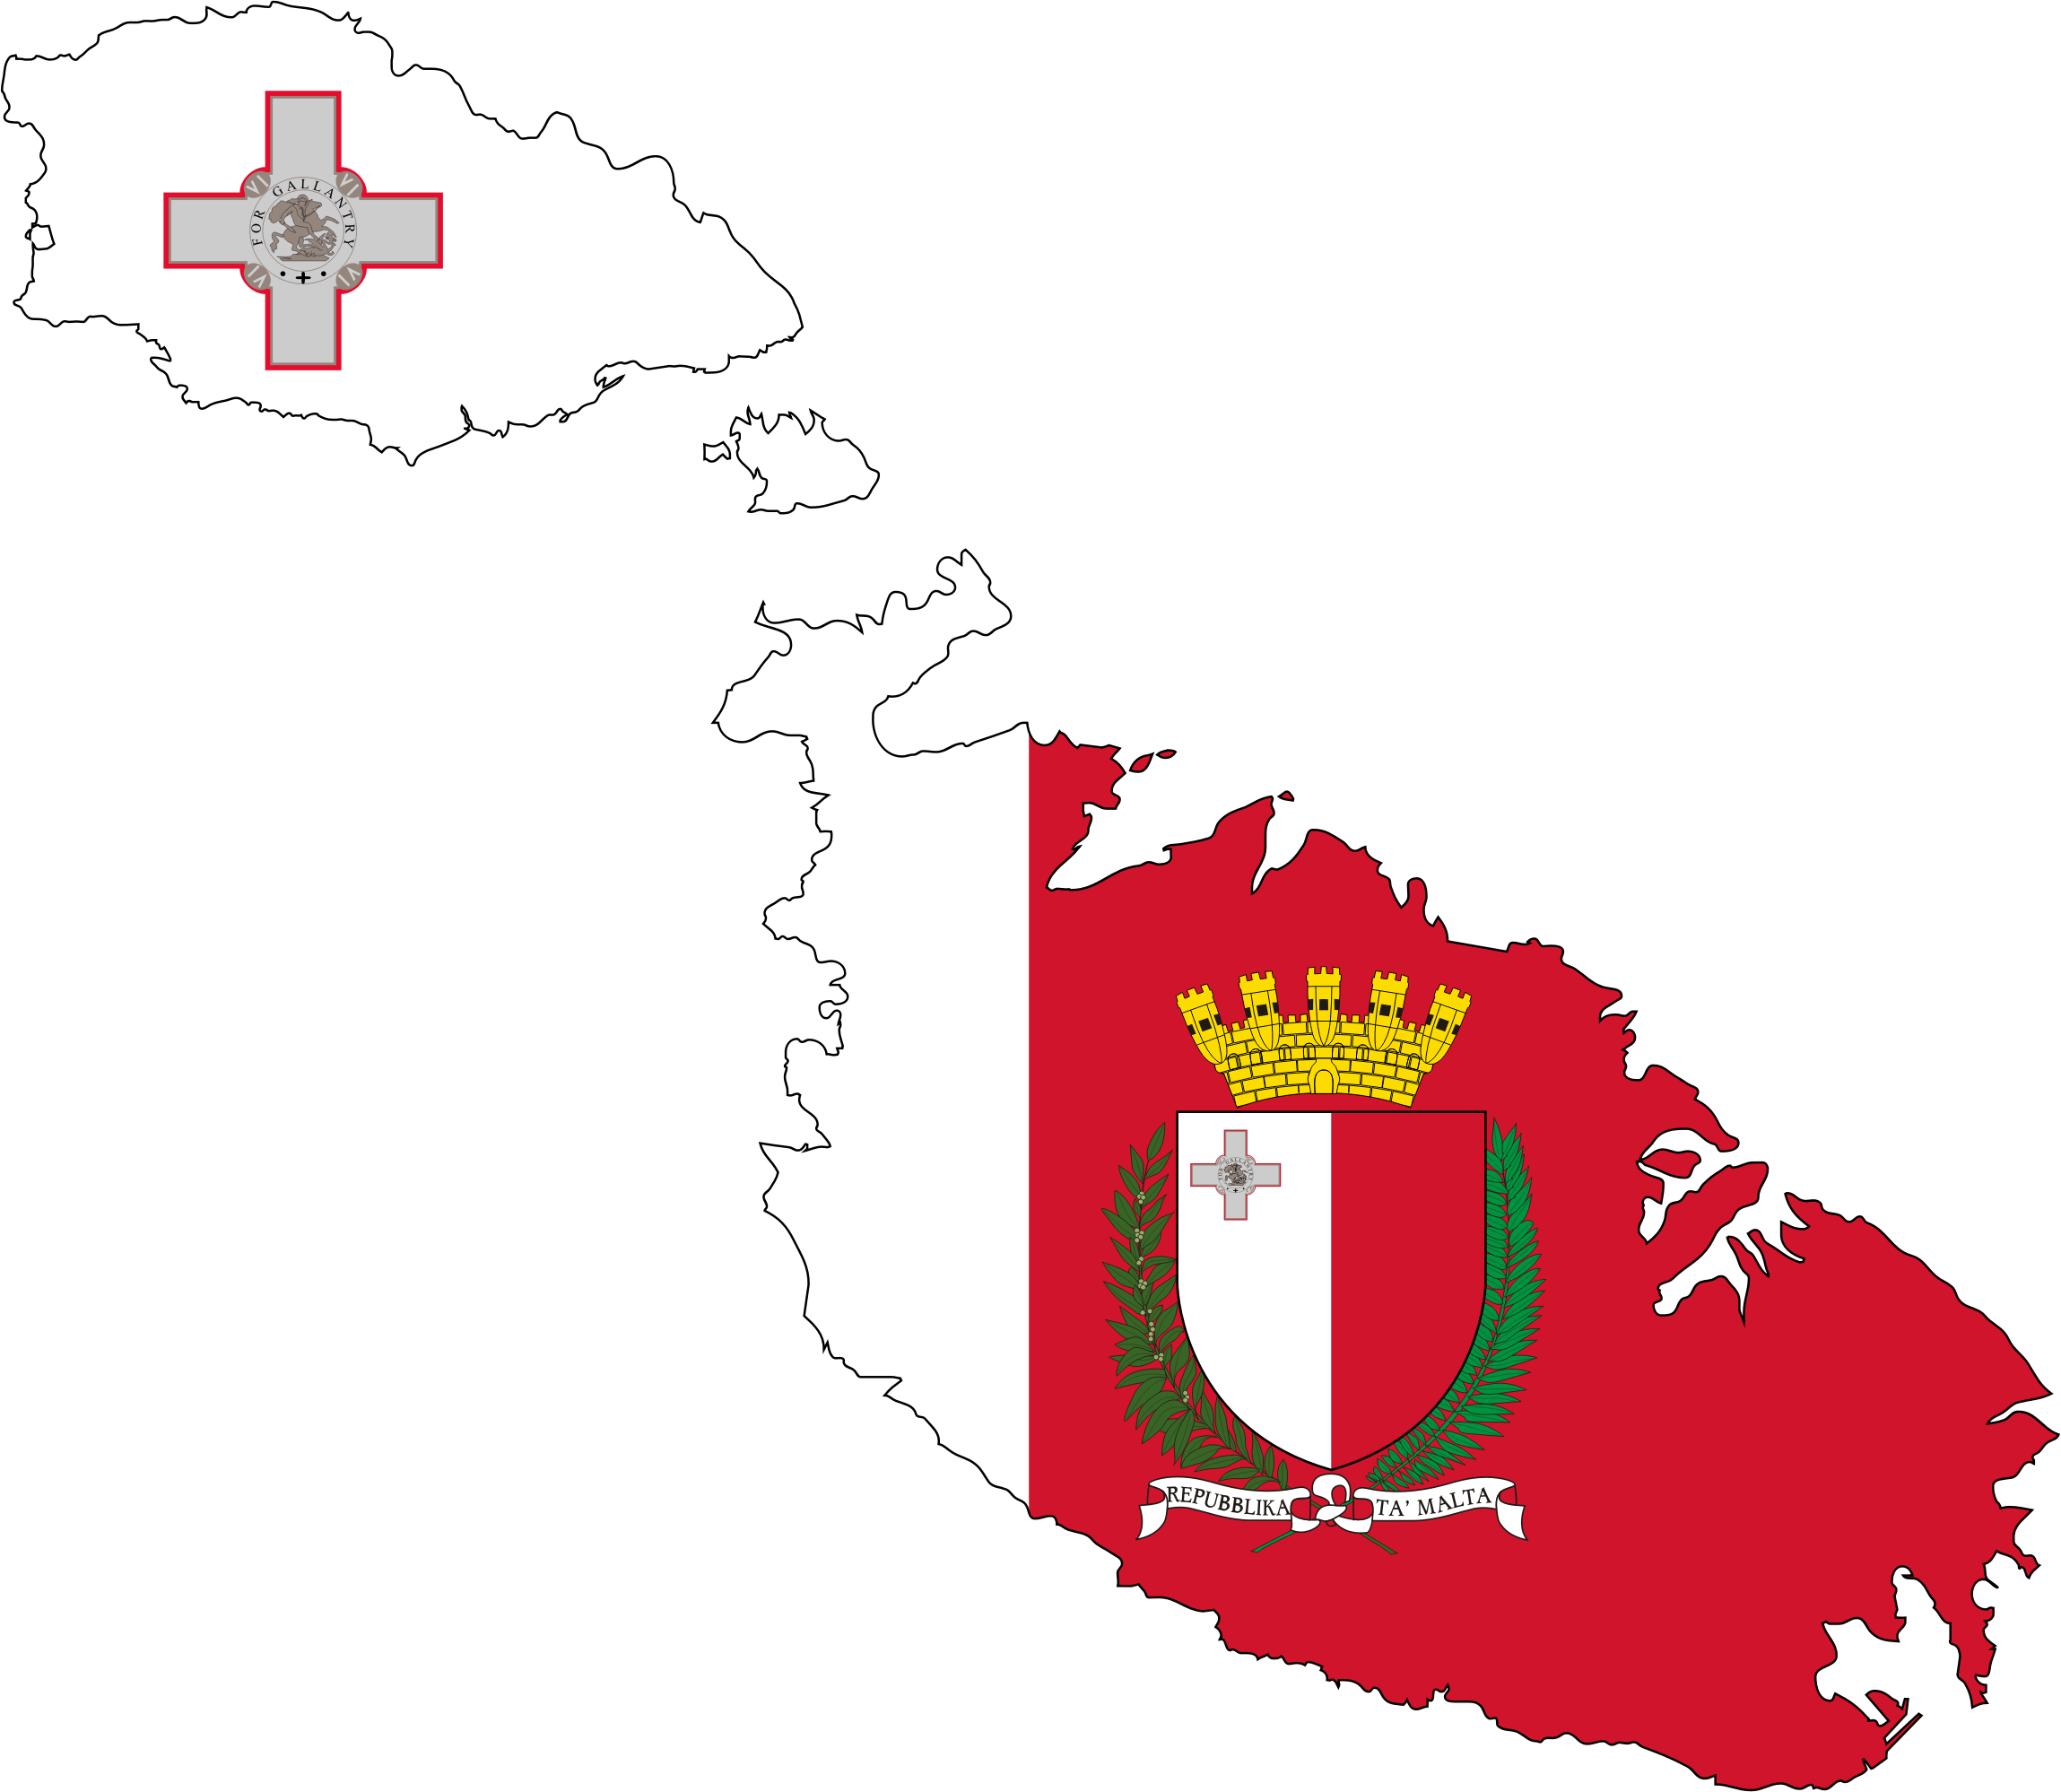 Malta Map Flag With Coat Of Arms by GDJ